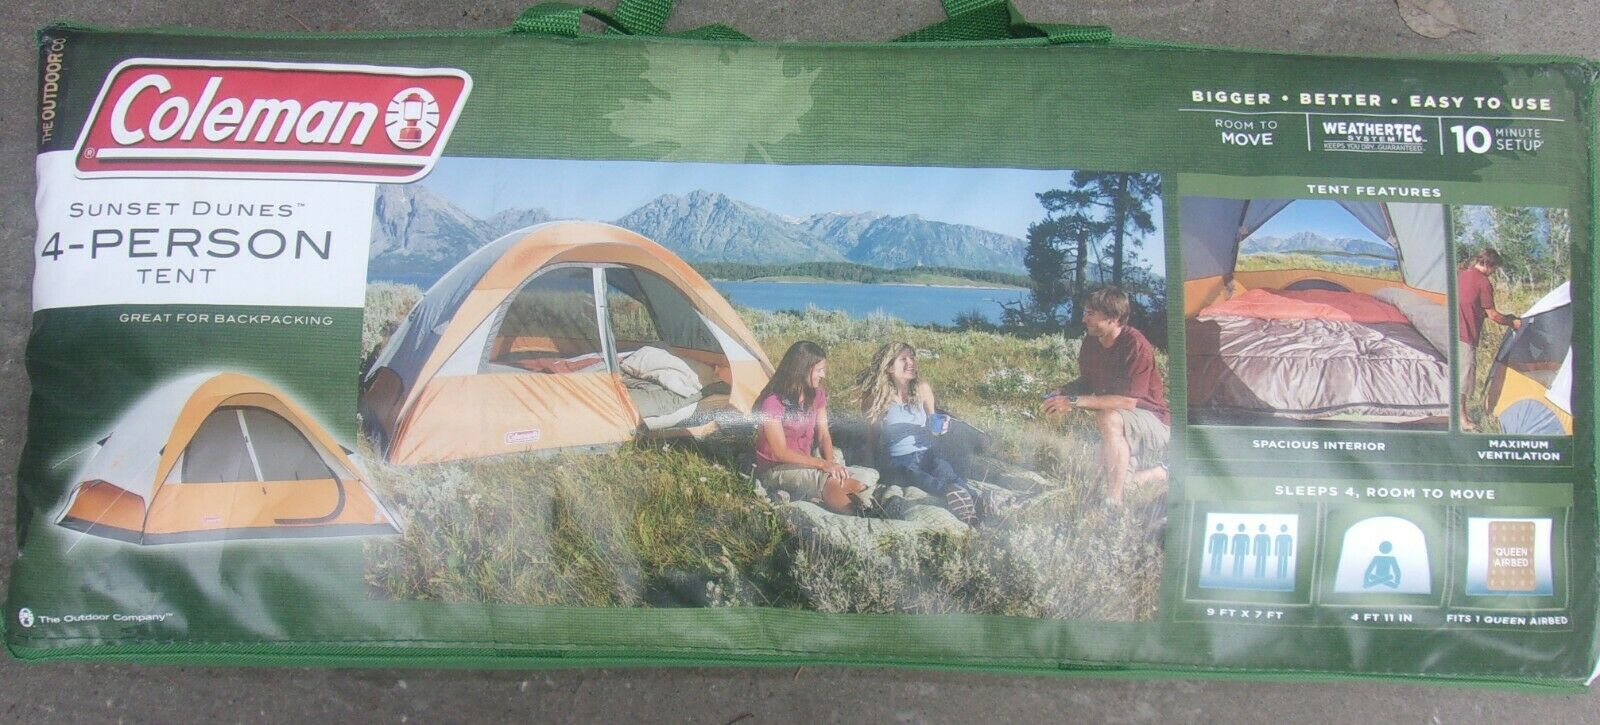 COLEMAN SUNSET DUNES 4 PERSON PERSON PERSON TENT WITH CARRYING BAG NEW NEVER USED FITS QUEEN 83ef3d